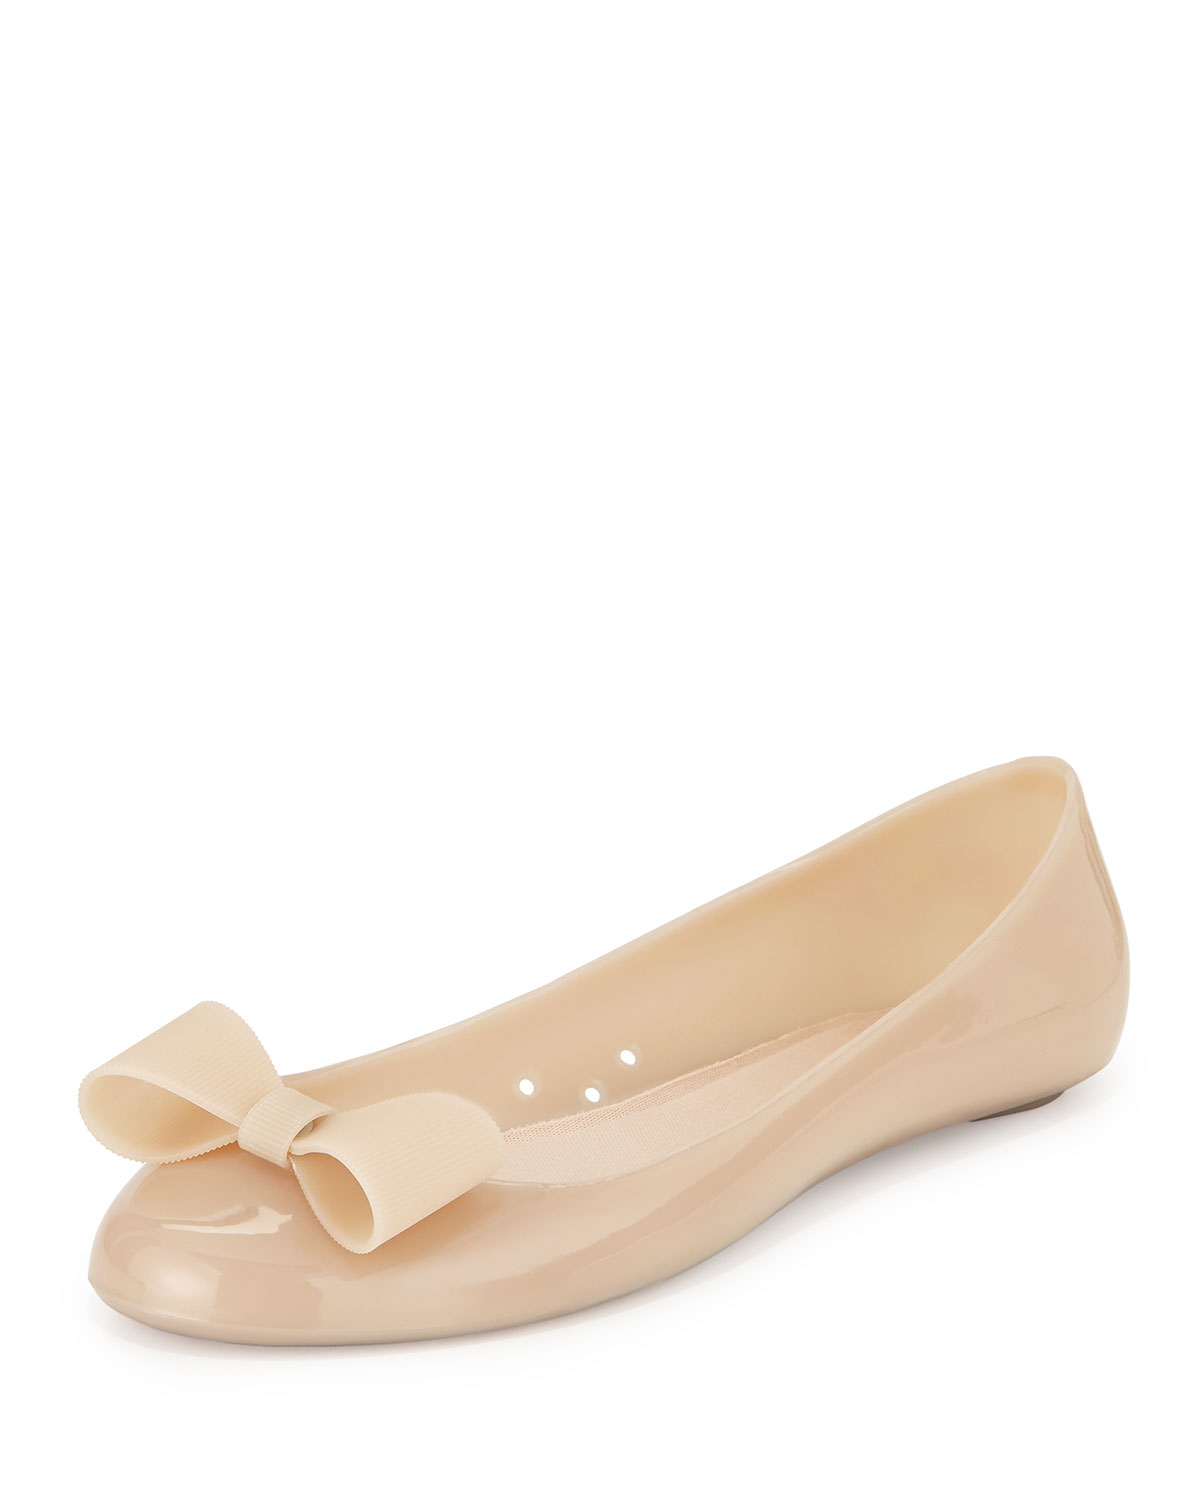 Jelly Shoes For Sale